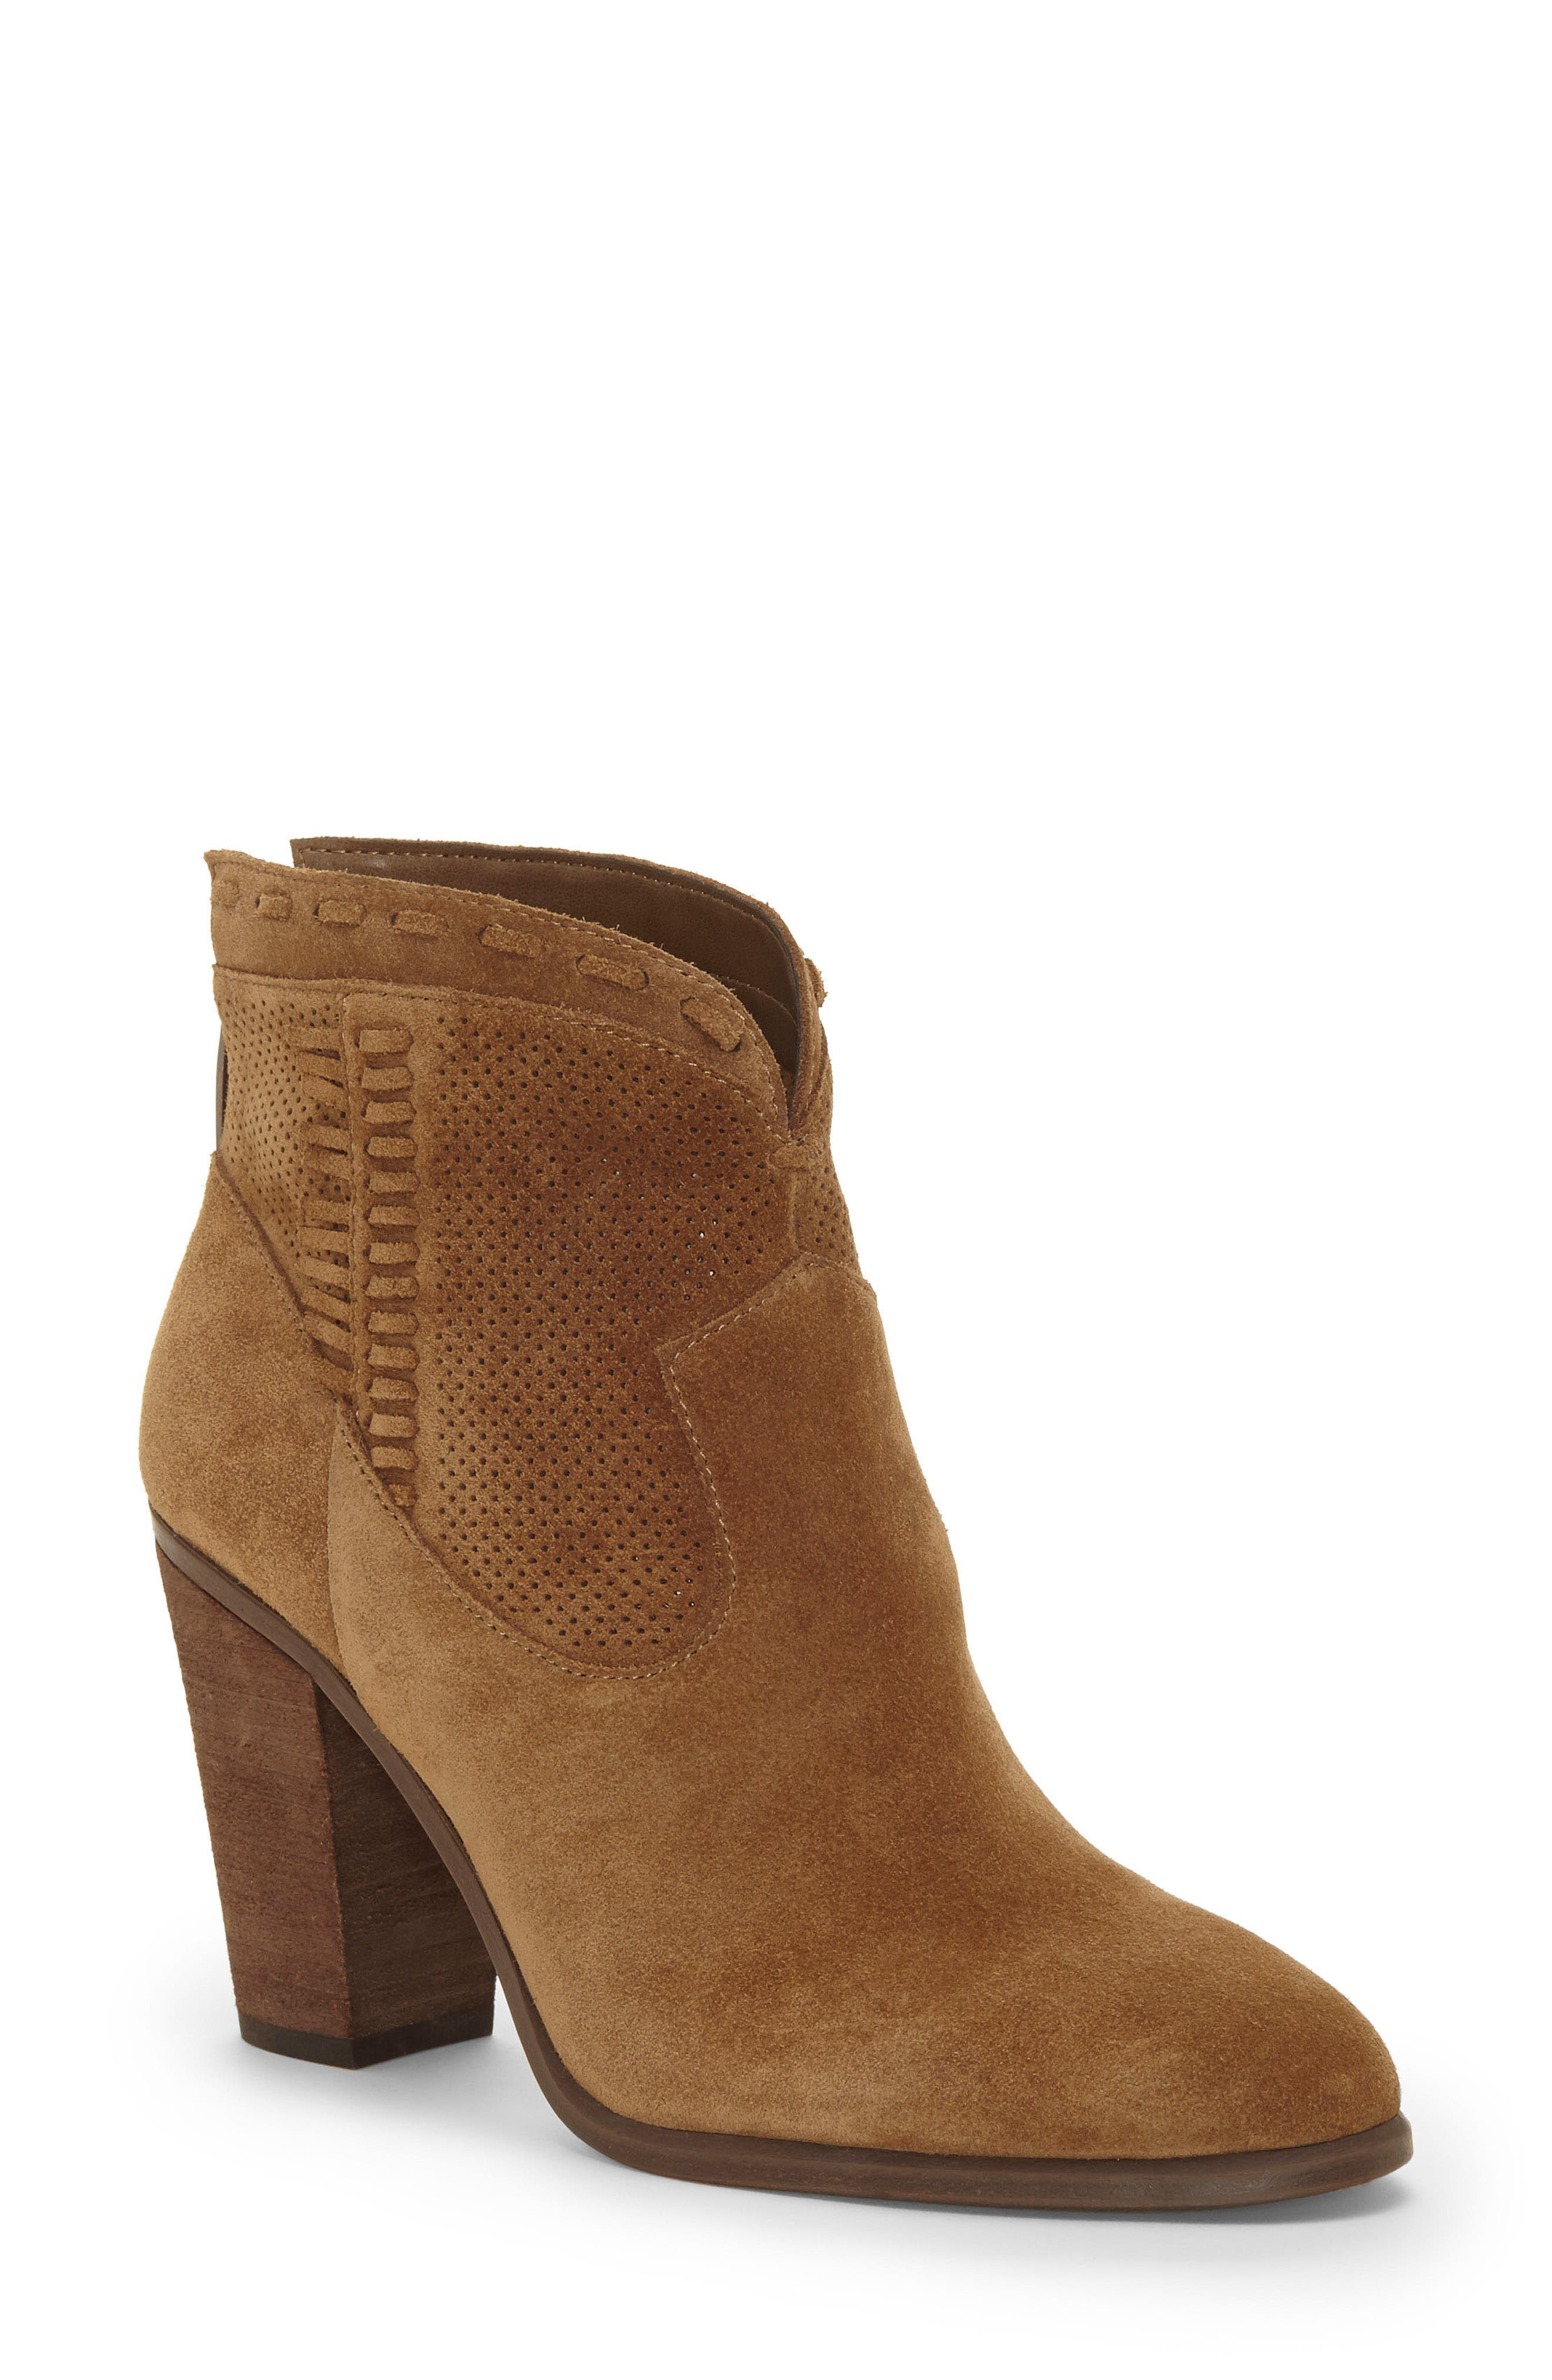 VINCE CAMUTO, Fretzia Perforated Boot, Main thumbnail 1, color, TREE HOUSE NUBUCK